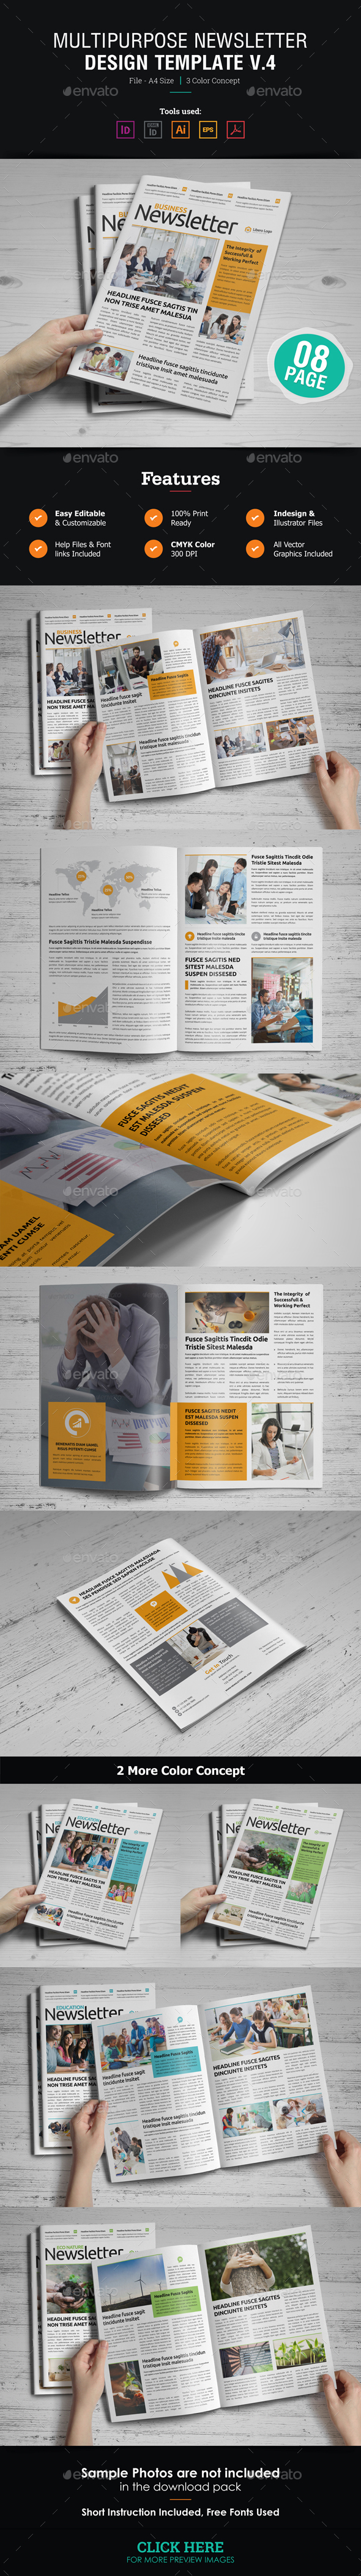 Newsletter Design v4 - Newsletters Print Templates